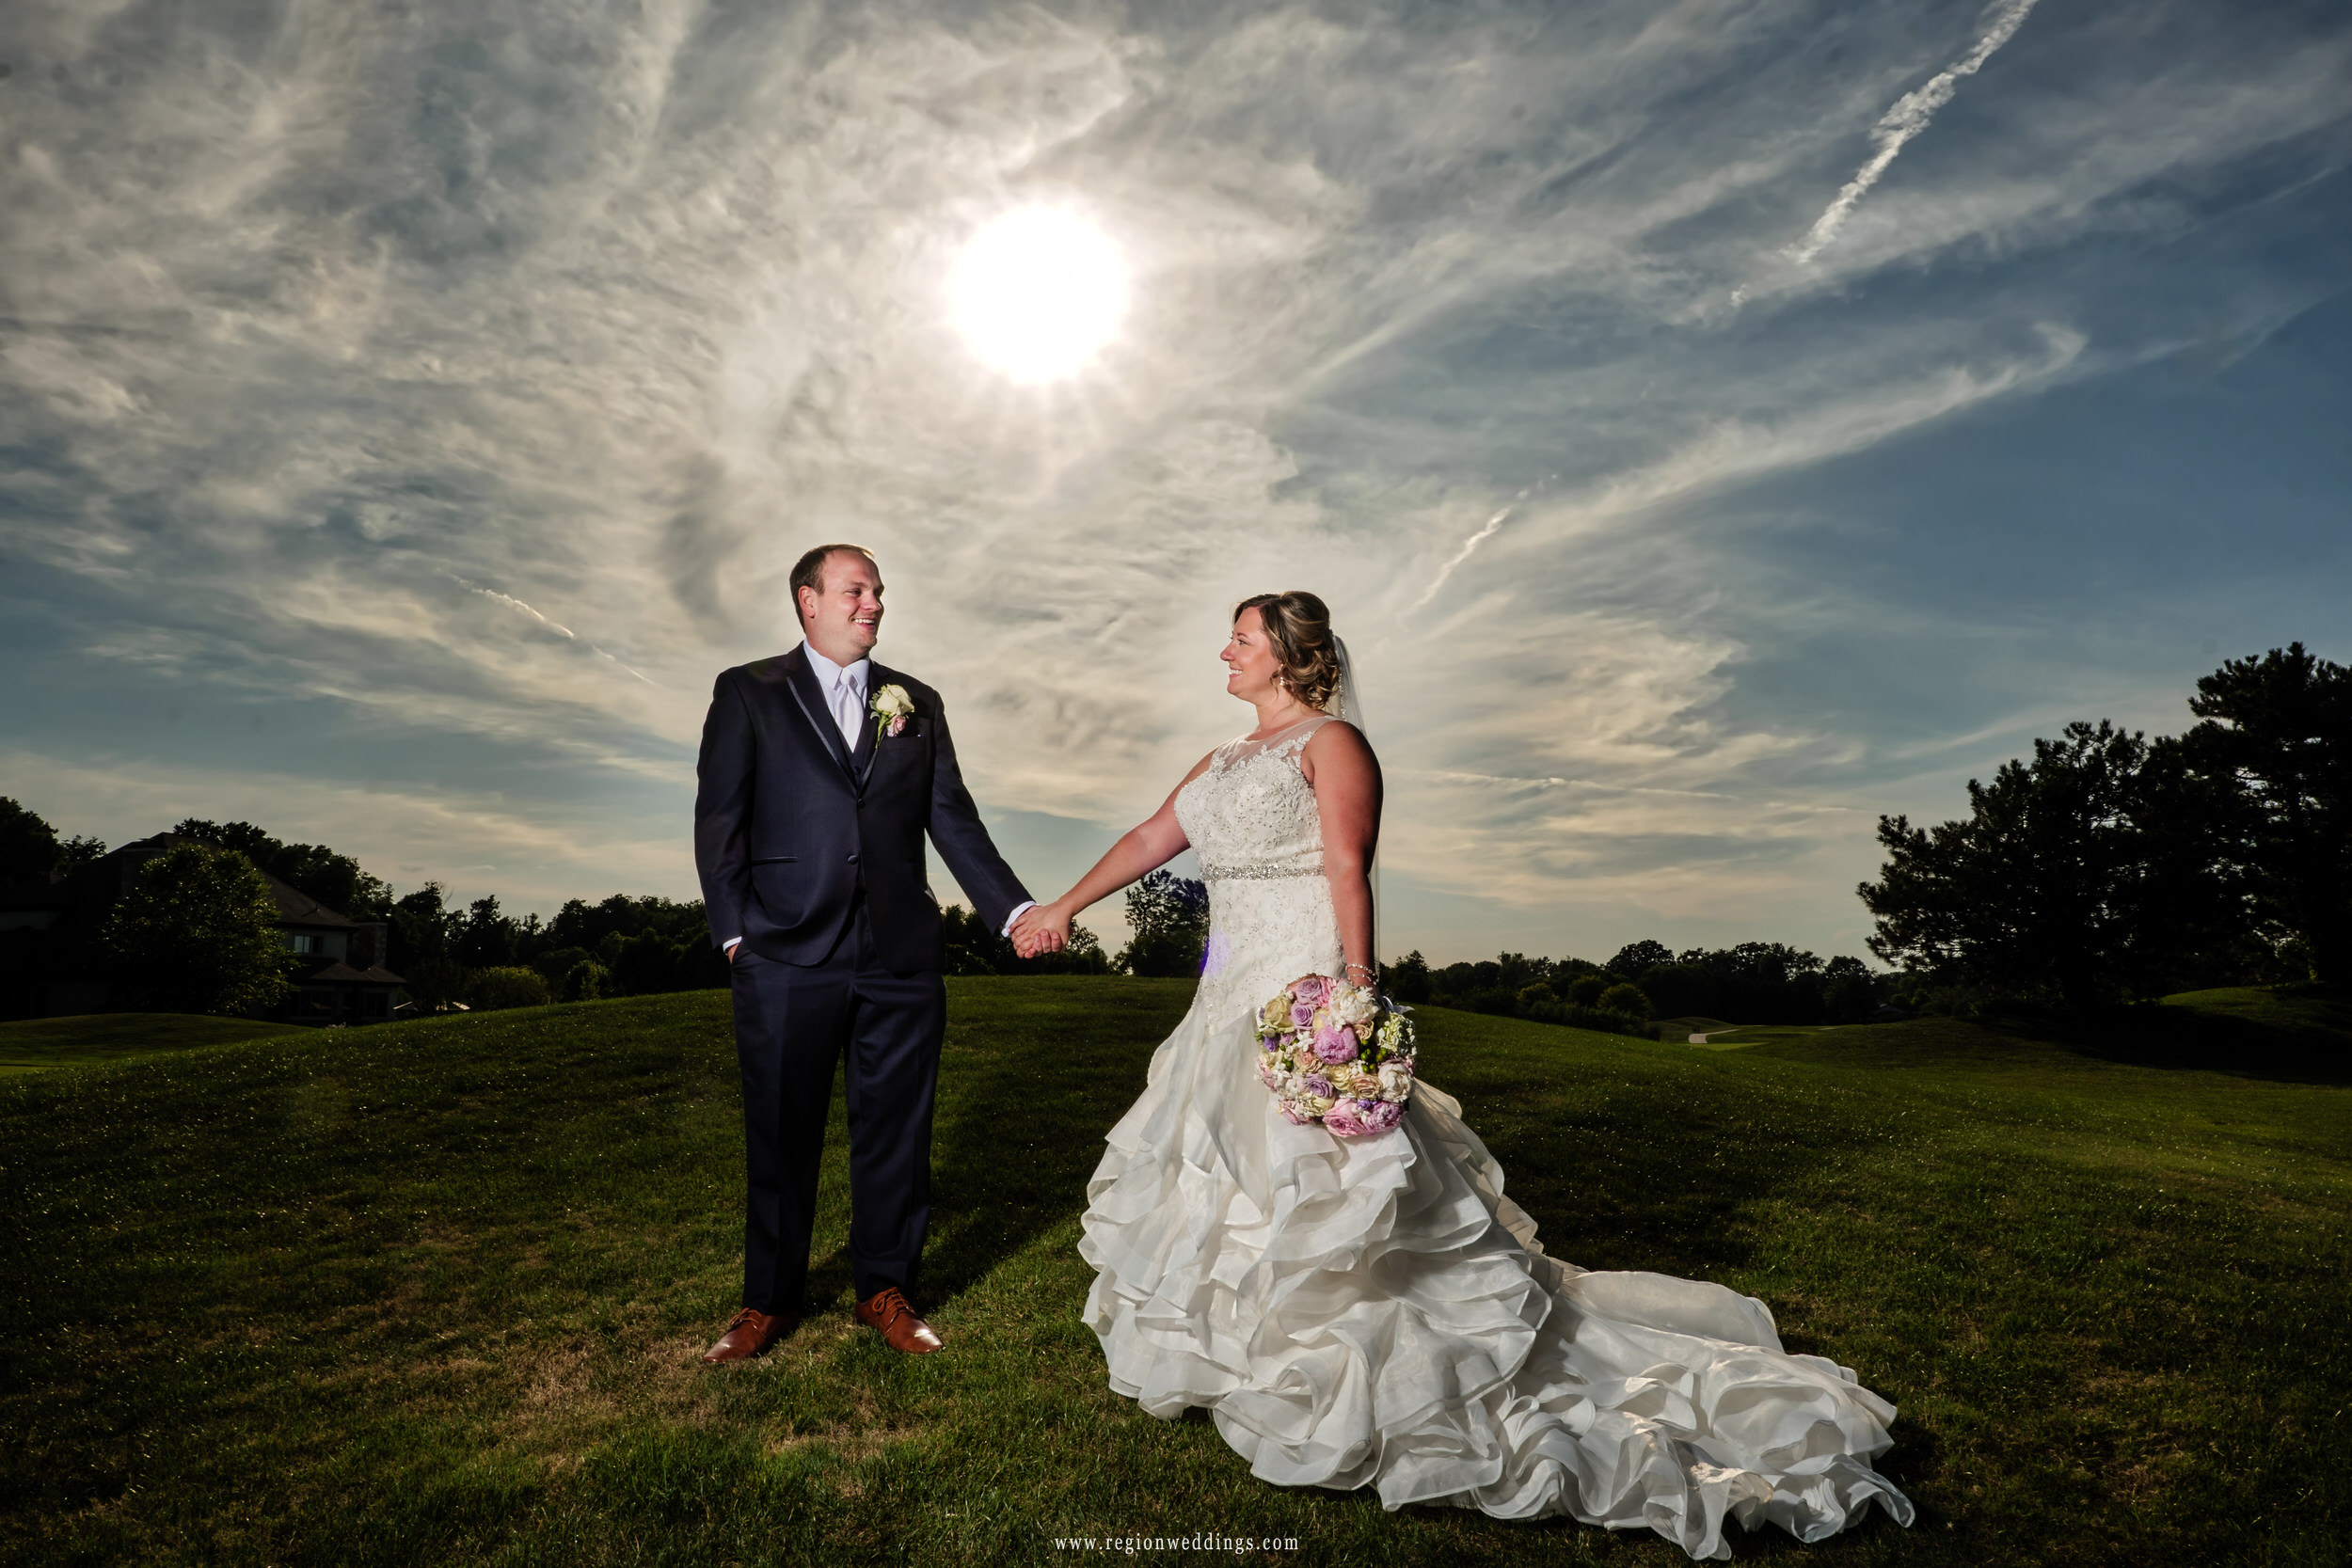 The sun shines upon the newlyweds at Sand Creek Golf Course in Schererville, Indiana.